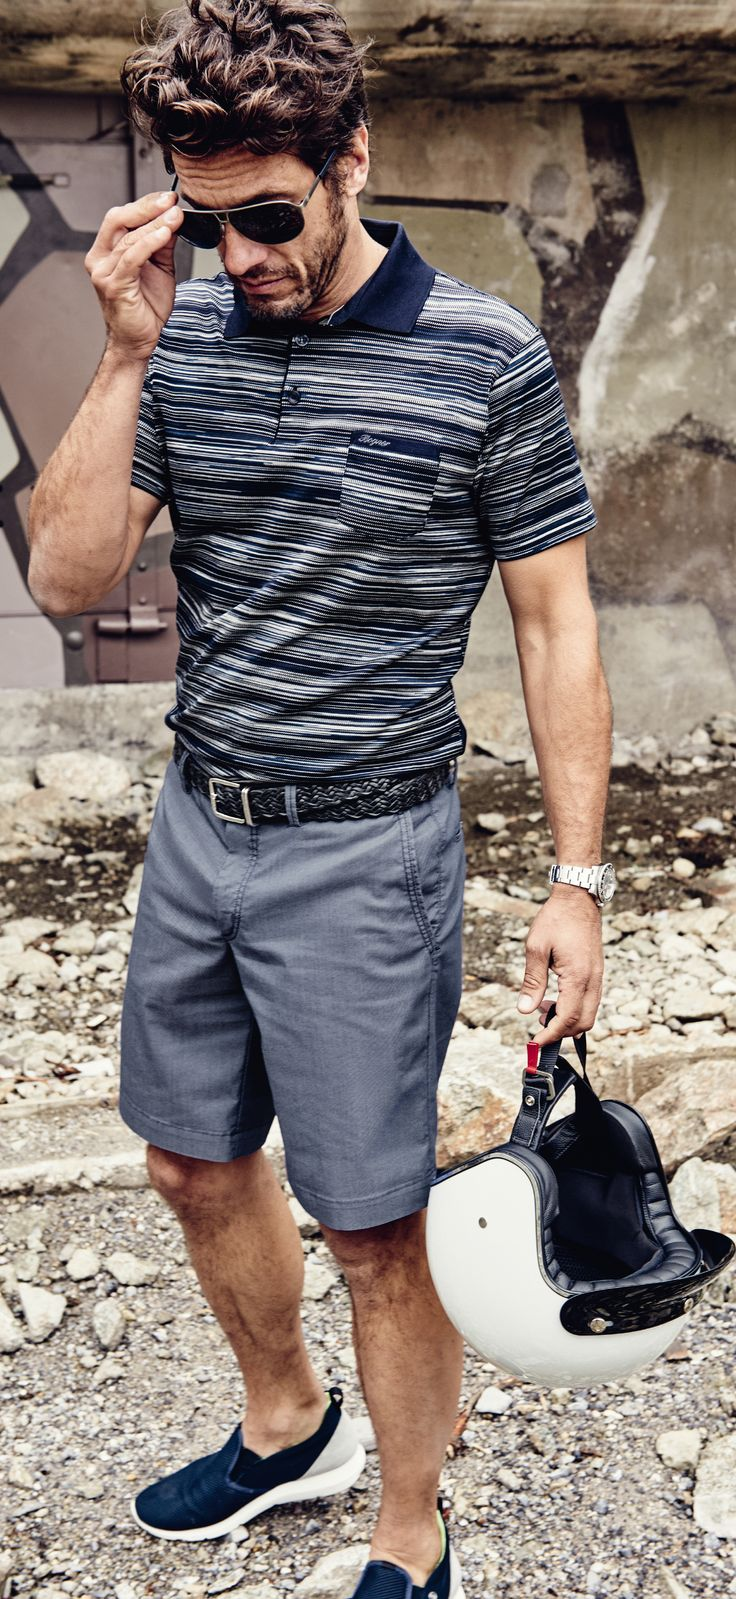 Still looking good, even without the bike. Classic-cut polo shirts with modern striping patterns and classy-yet-comfortable shorts come together for a cool summer look from the Bogner Man Spring/Summer 2016 collection.